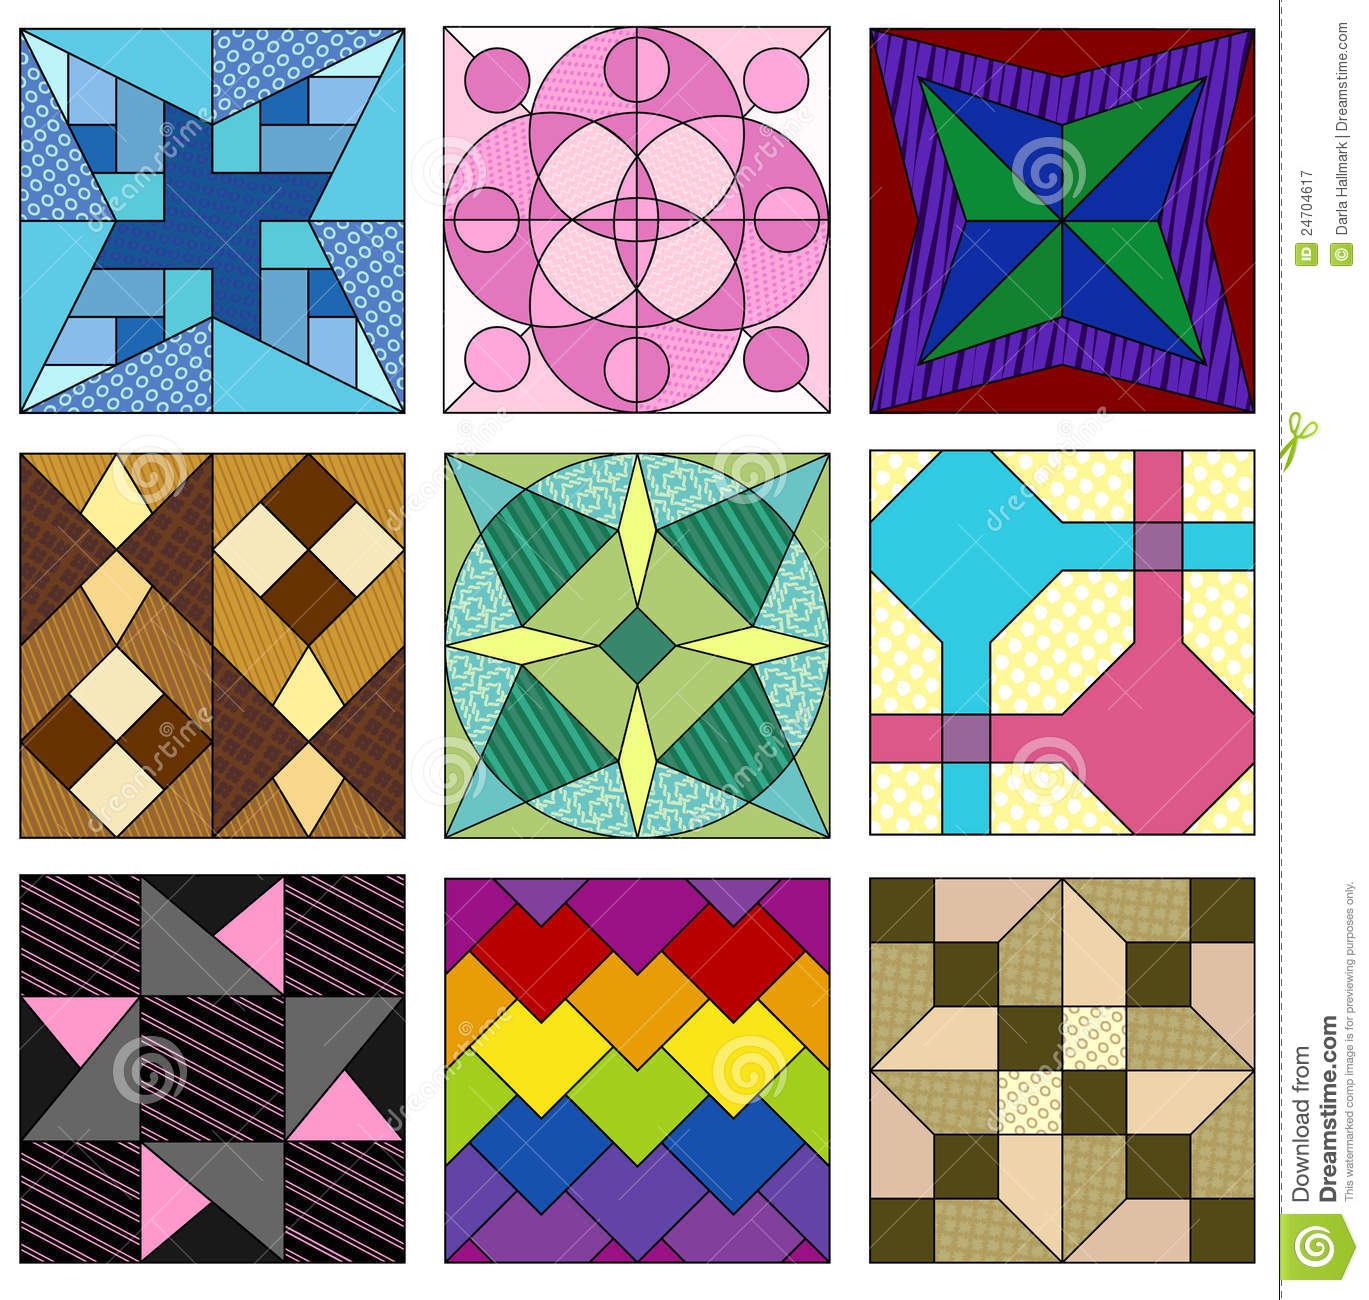 Free Traditional Quilting Patterns : Traditional Quilting Patterns Royalty Free Stock Photography - Image: 24704617